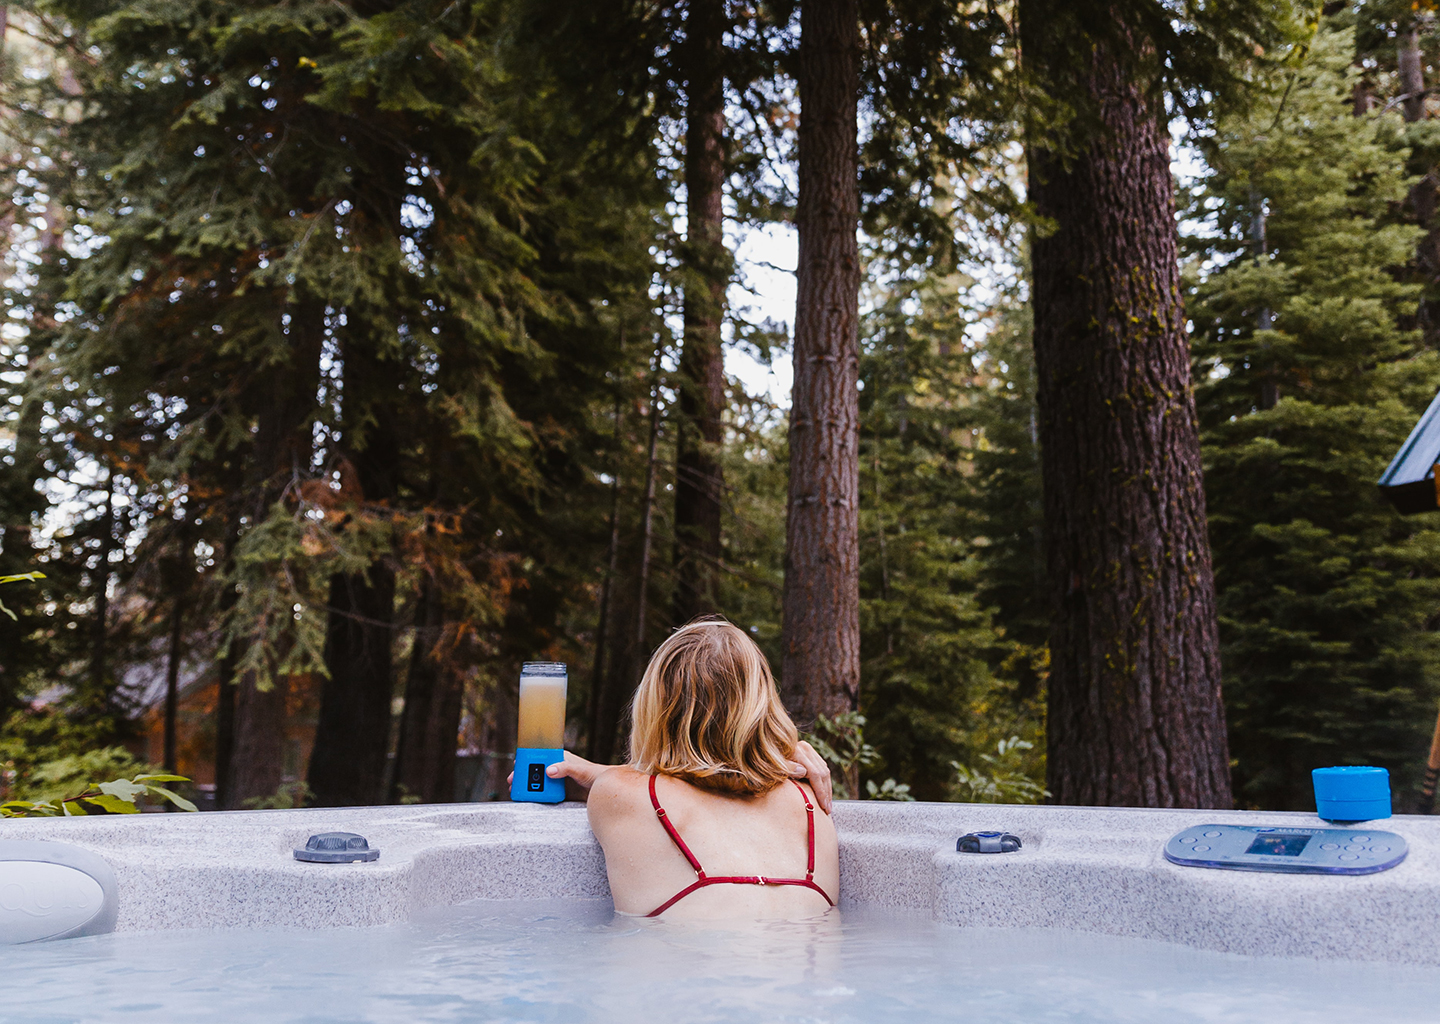 A Woman Stares into the Wilderness From Her Hot Tub